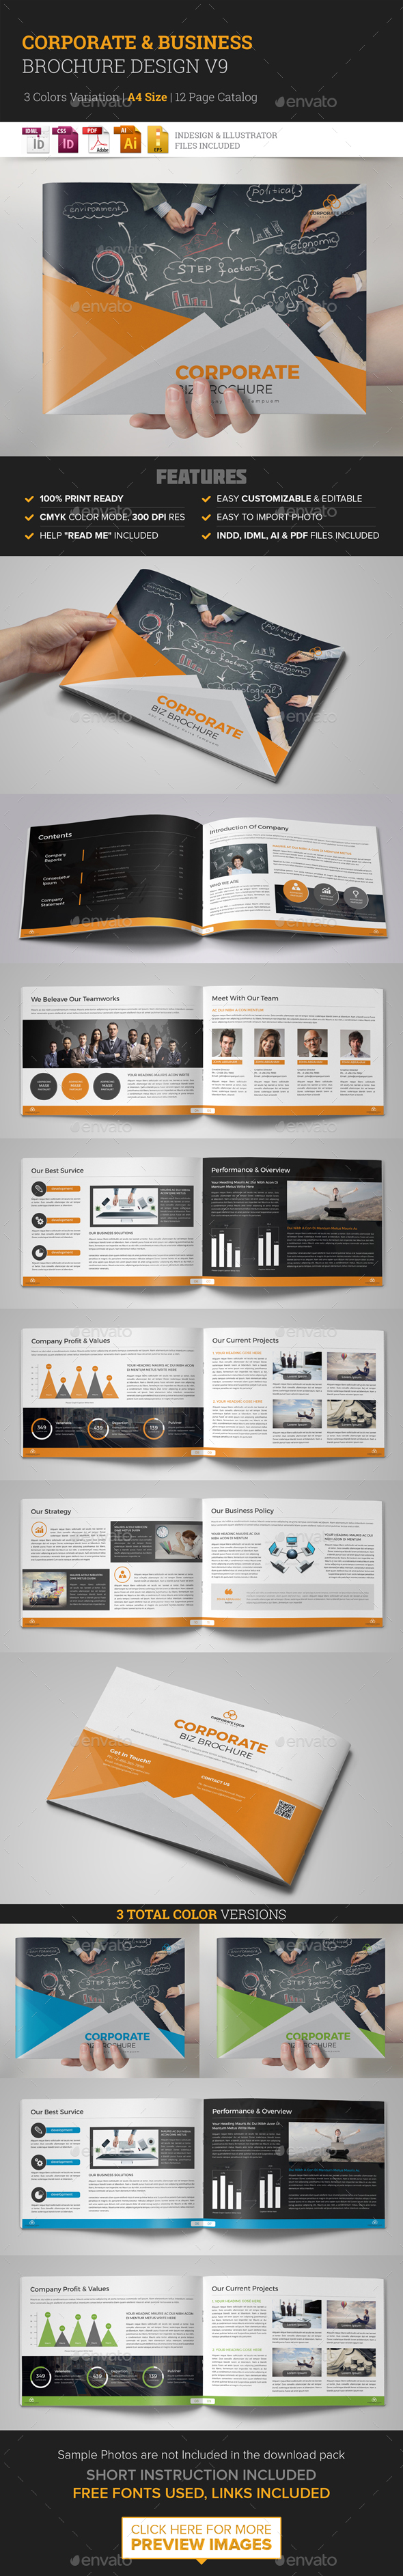 GraphicRiver Corporate Multipurpose Brochure Design v9 21002694